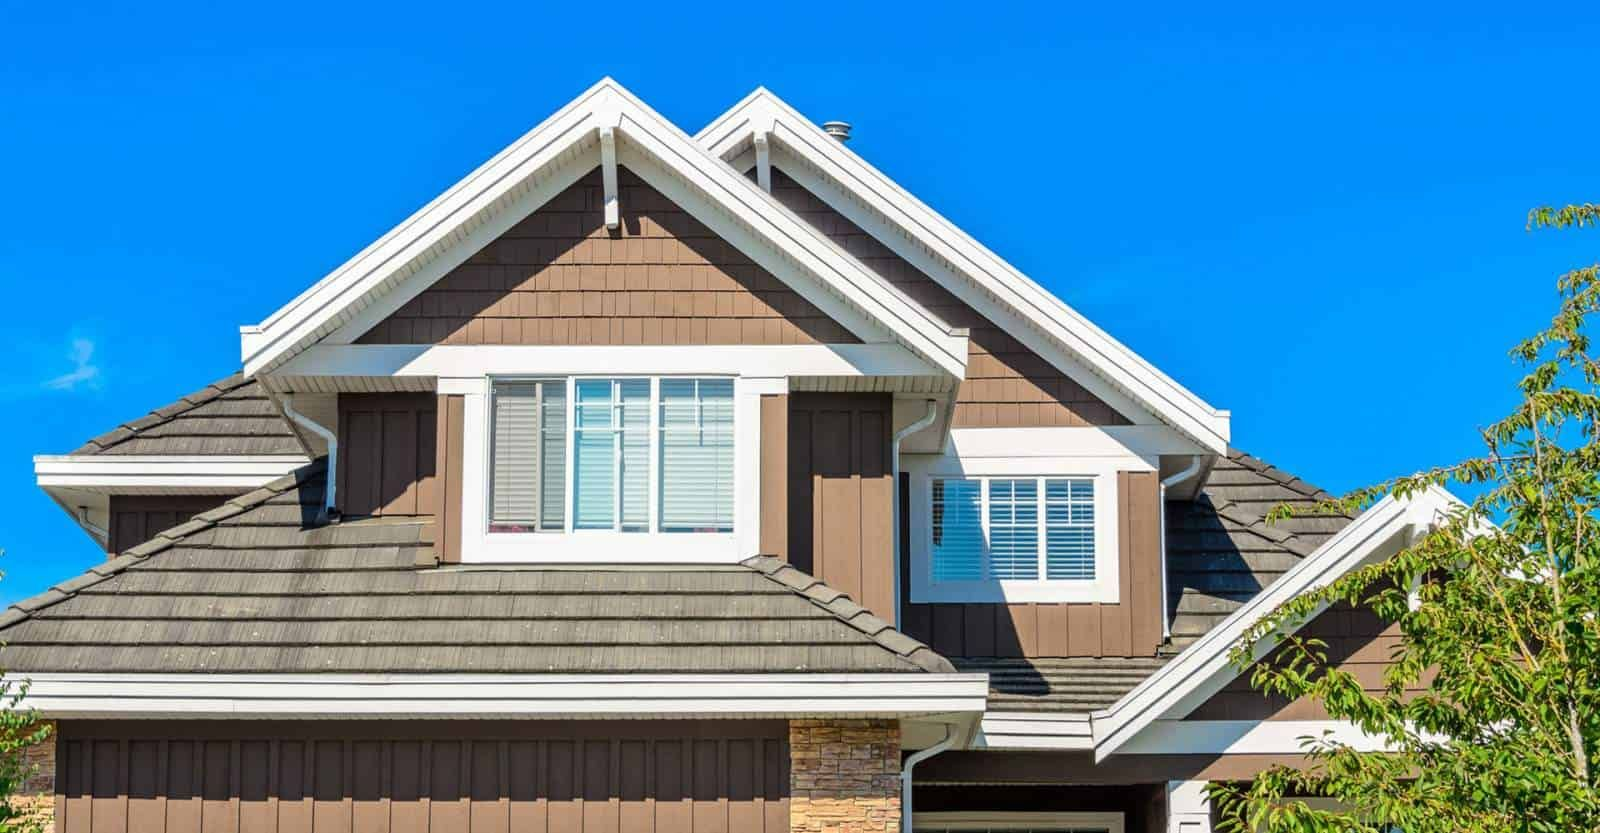 Pin By Lazioromainter On 1 Residential Remodel Roofing Roofing Services